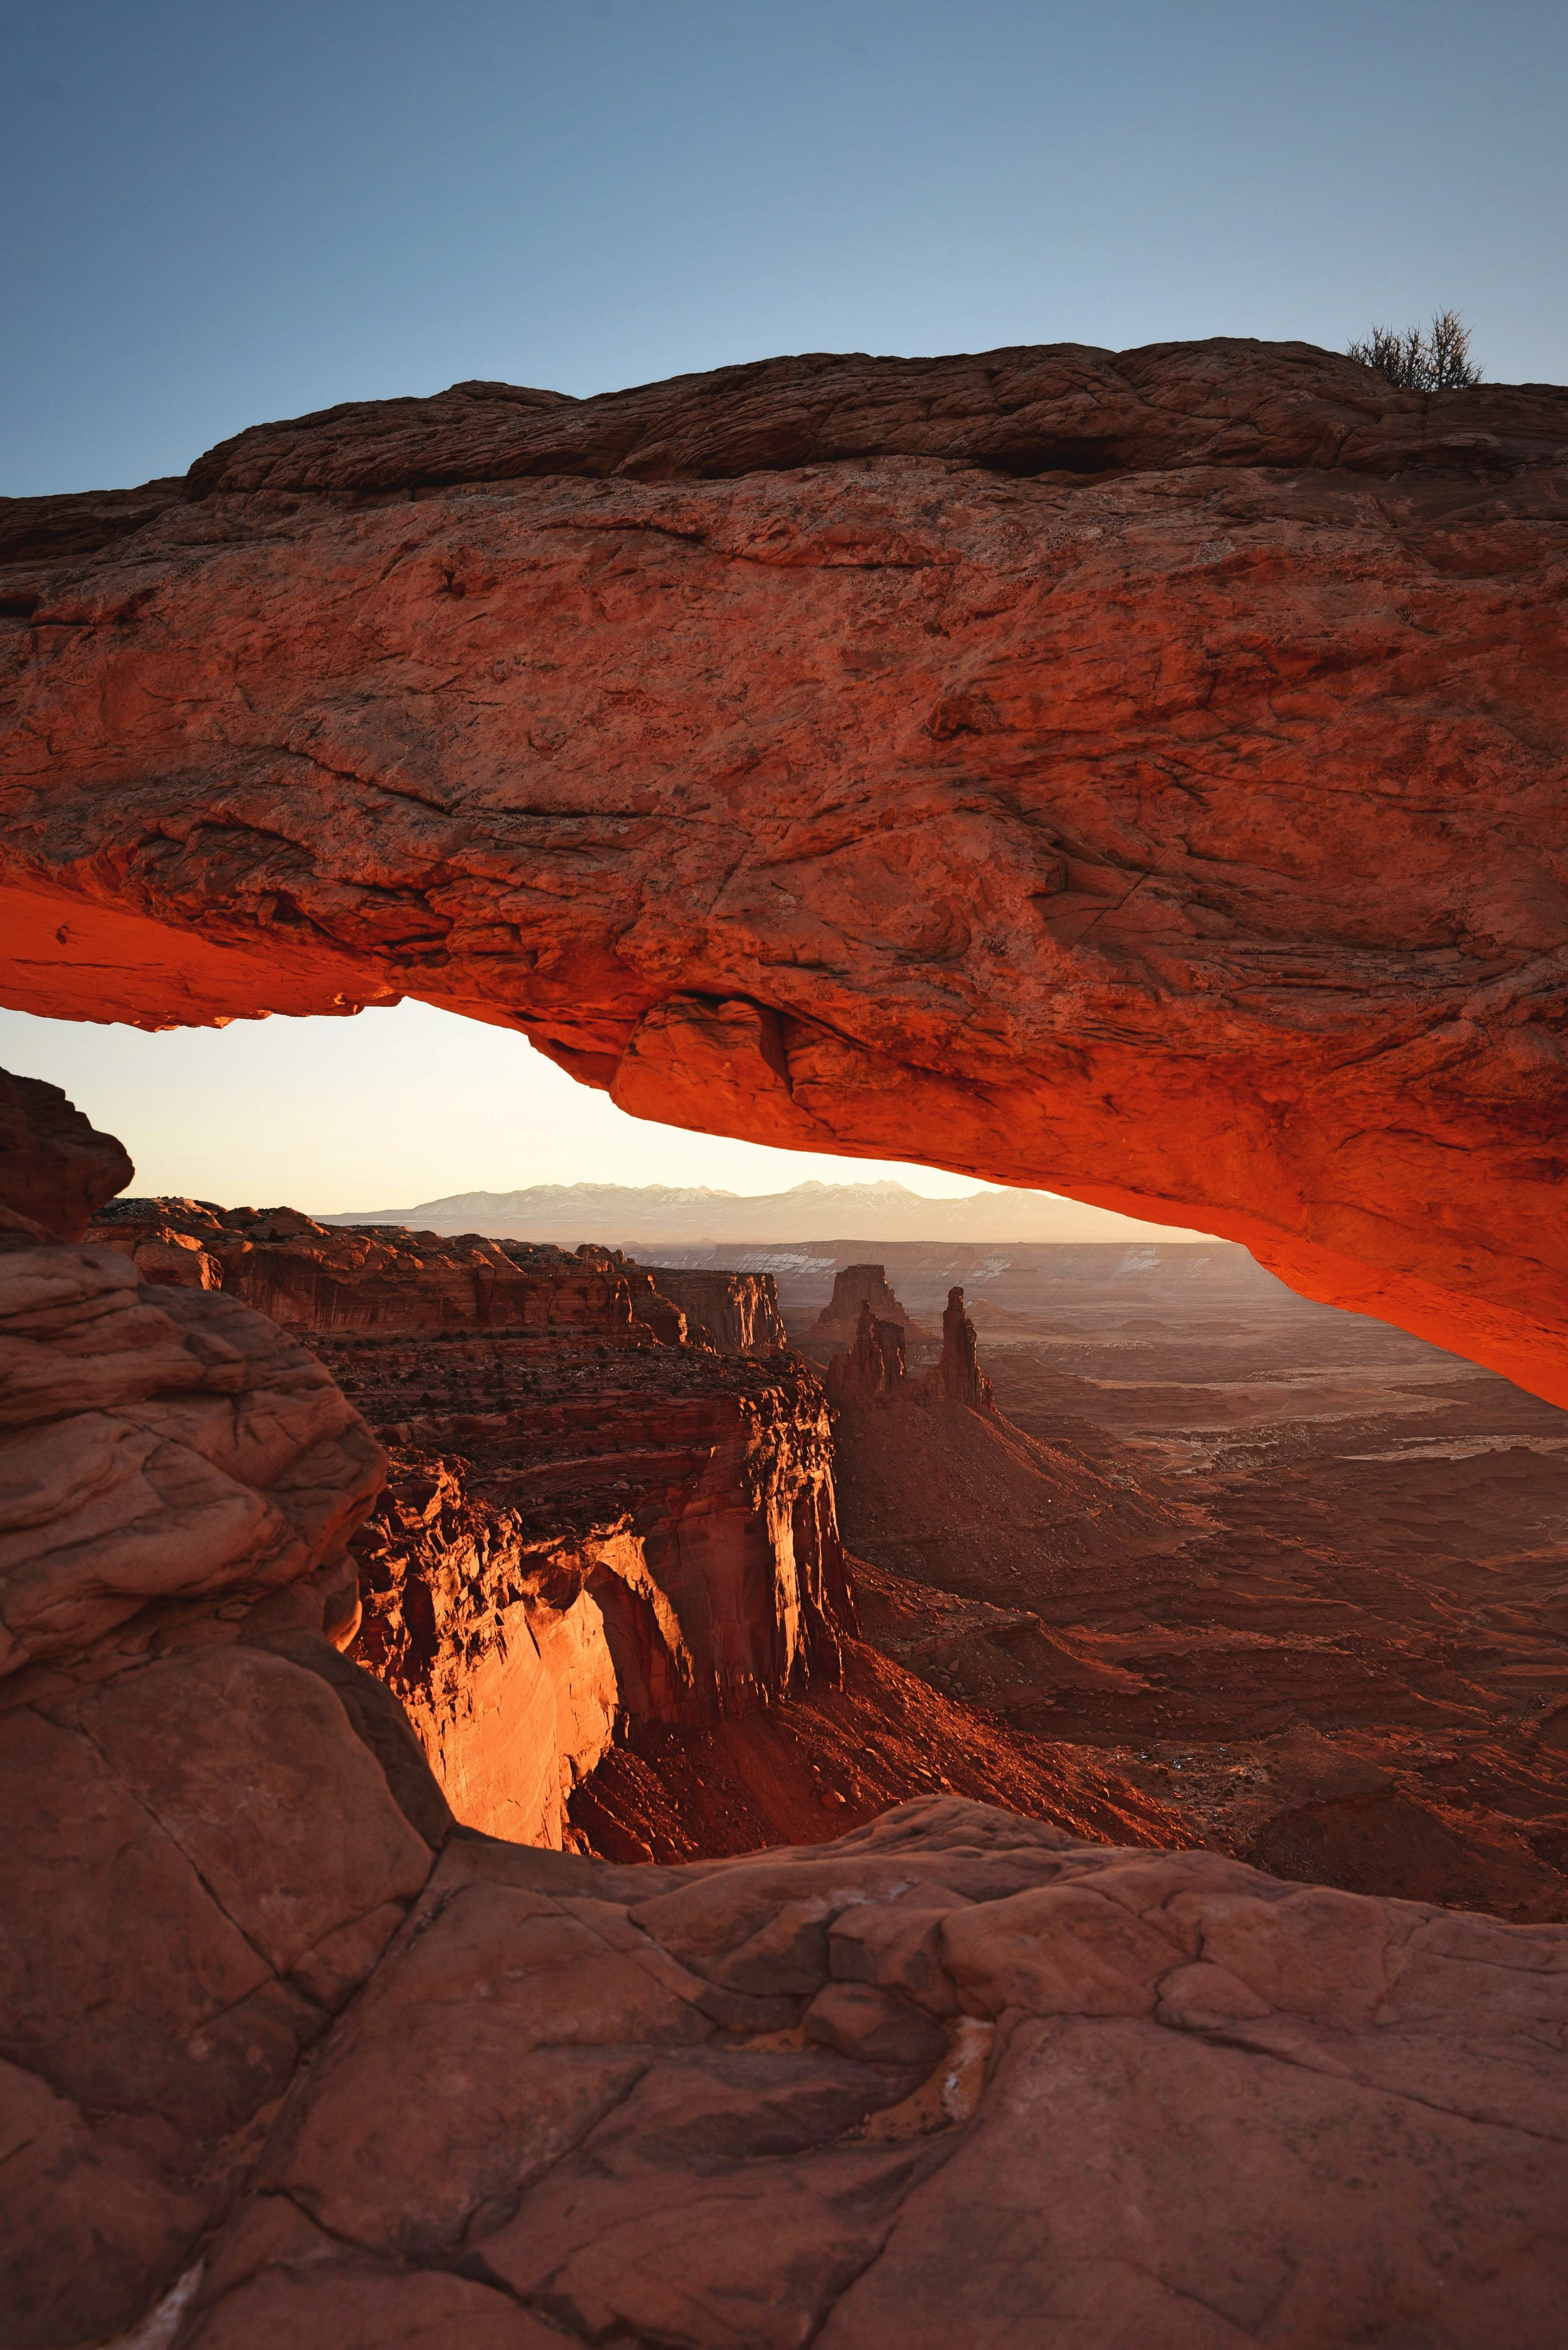 The sunrise turns the underside of Mesa Arch a beautiful red color.